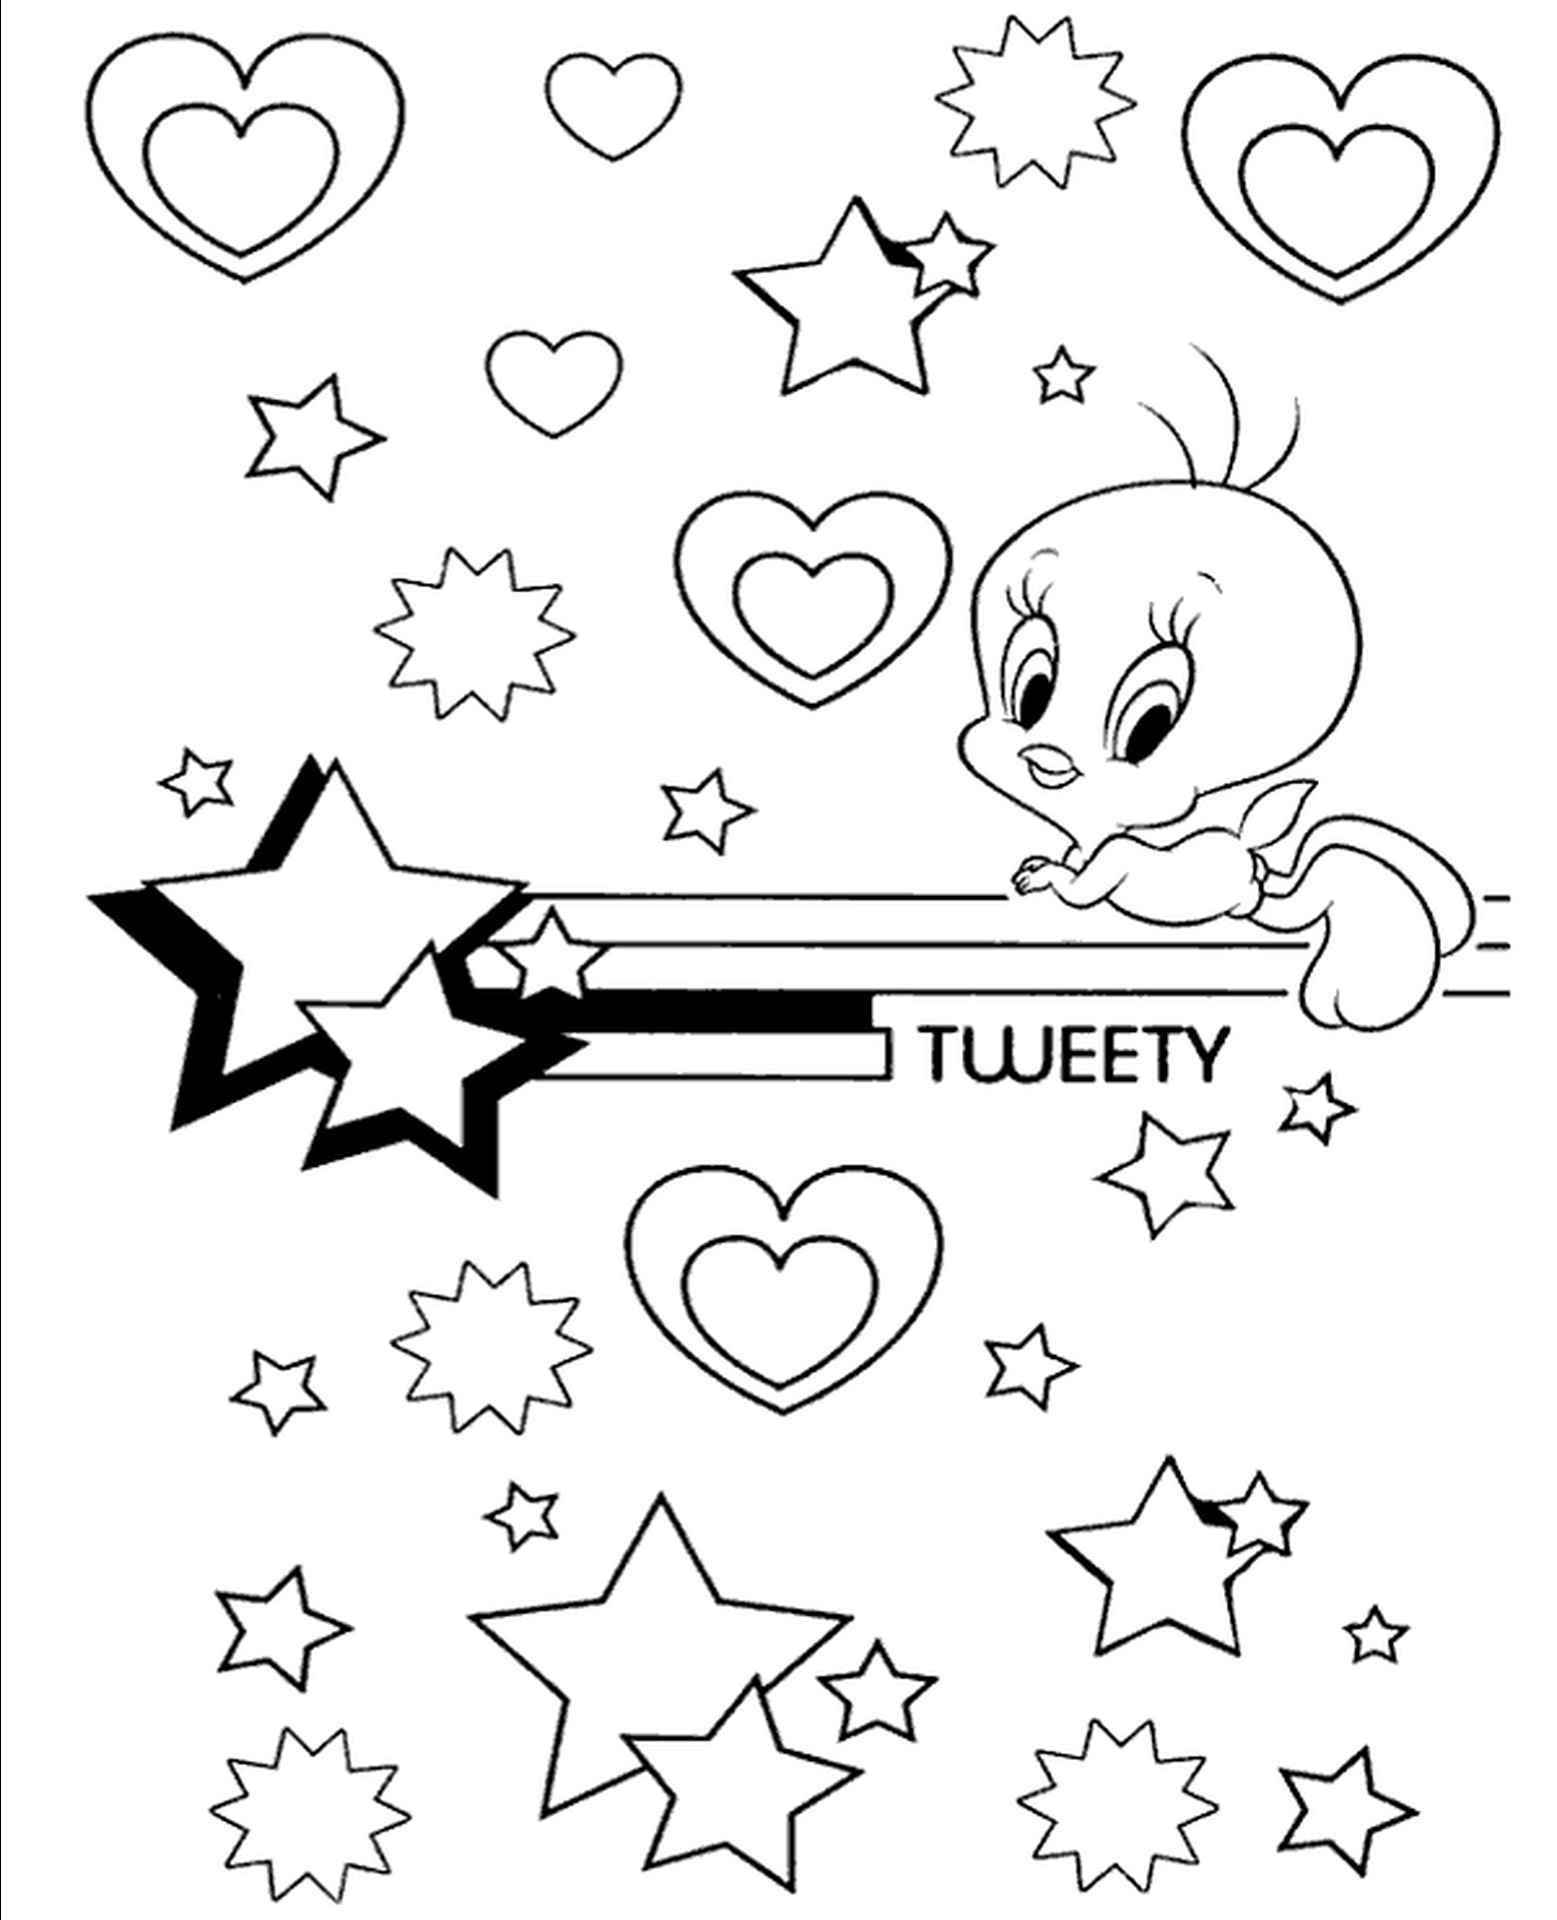 Tweety With Stars And Hearts Coloring Page